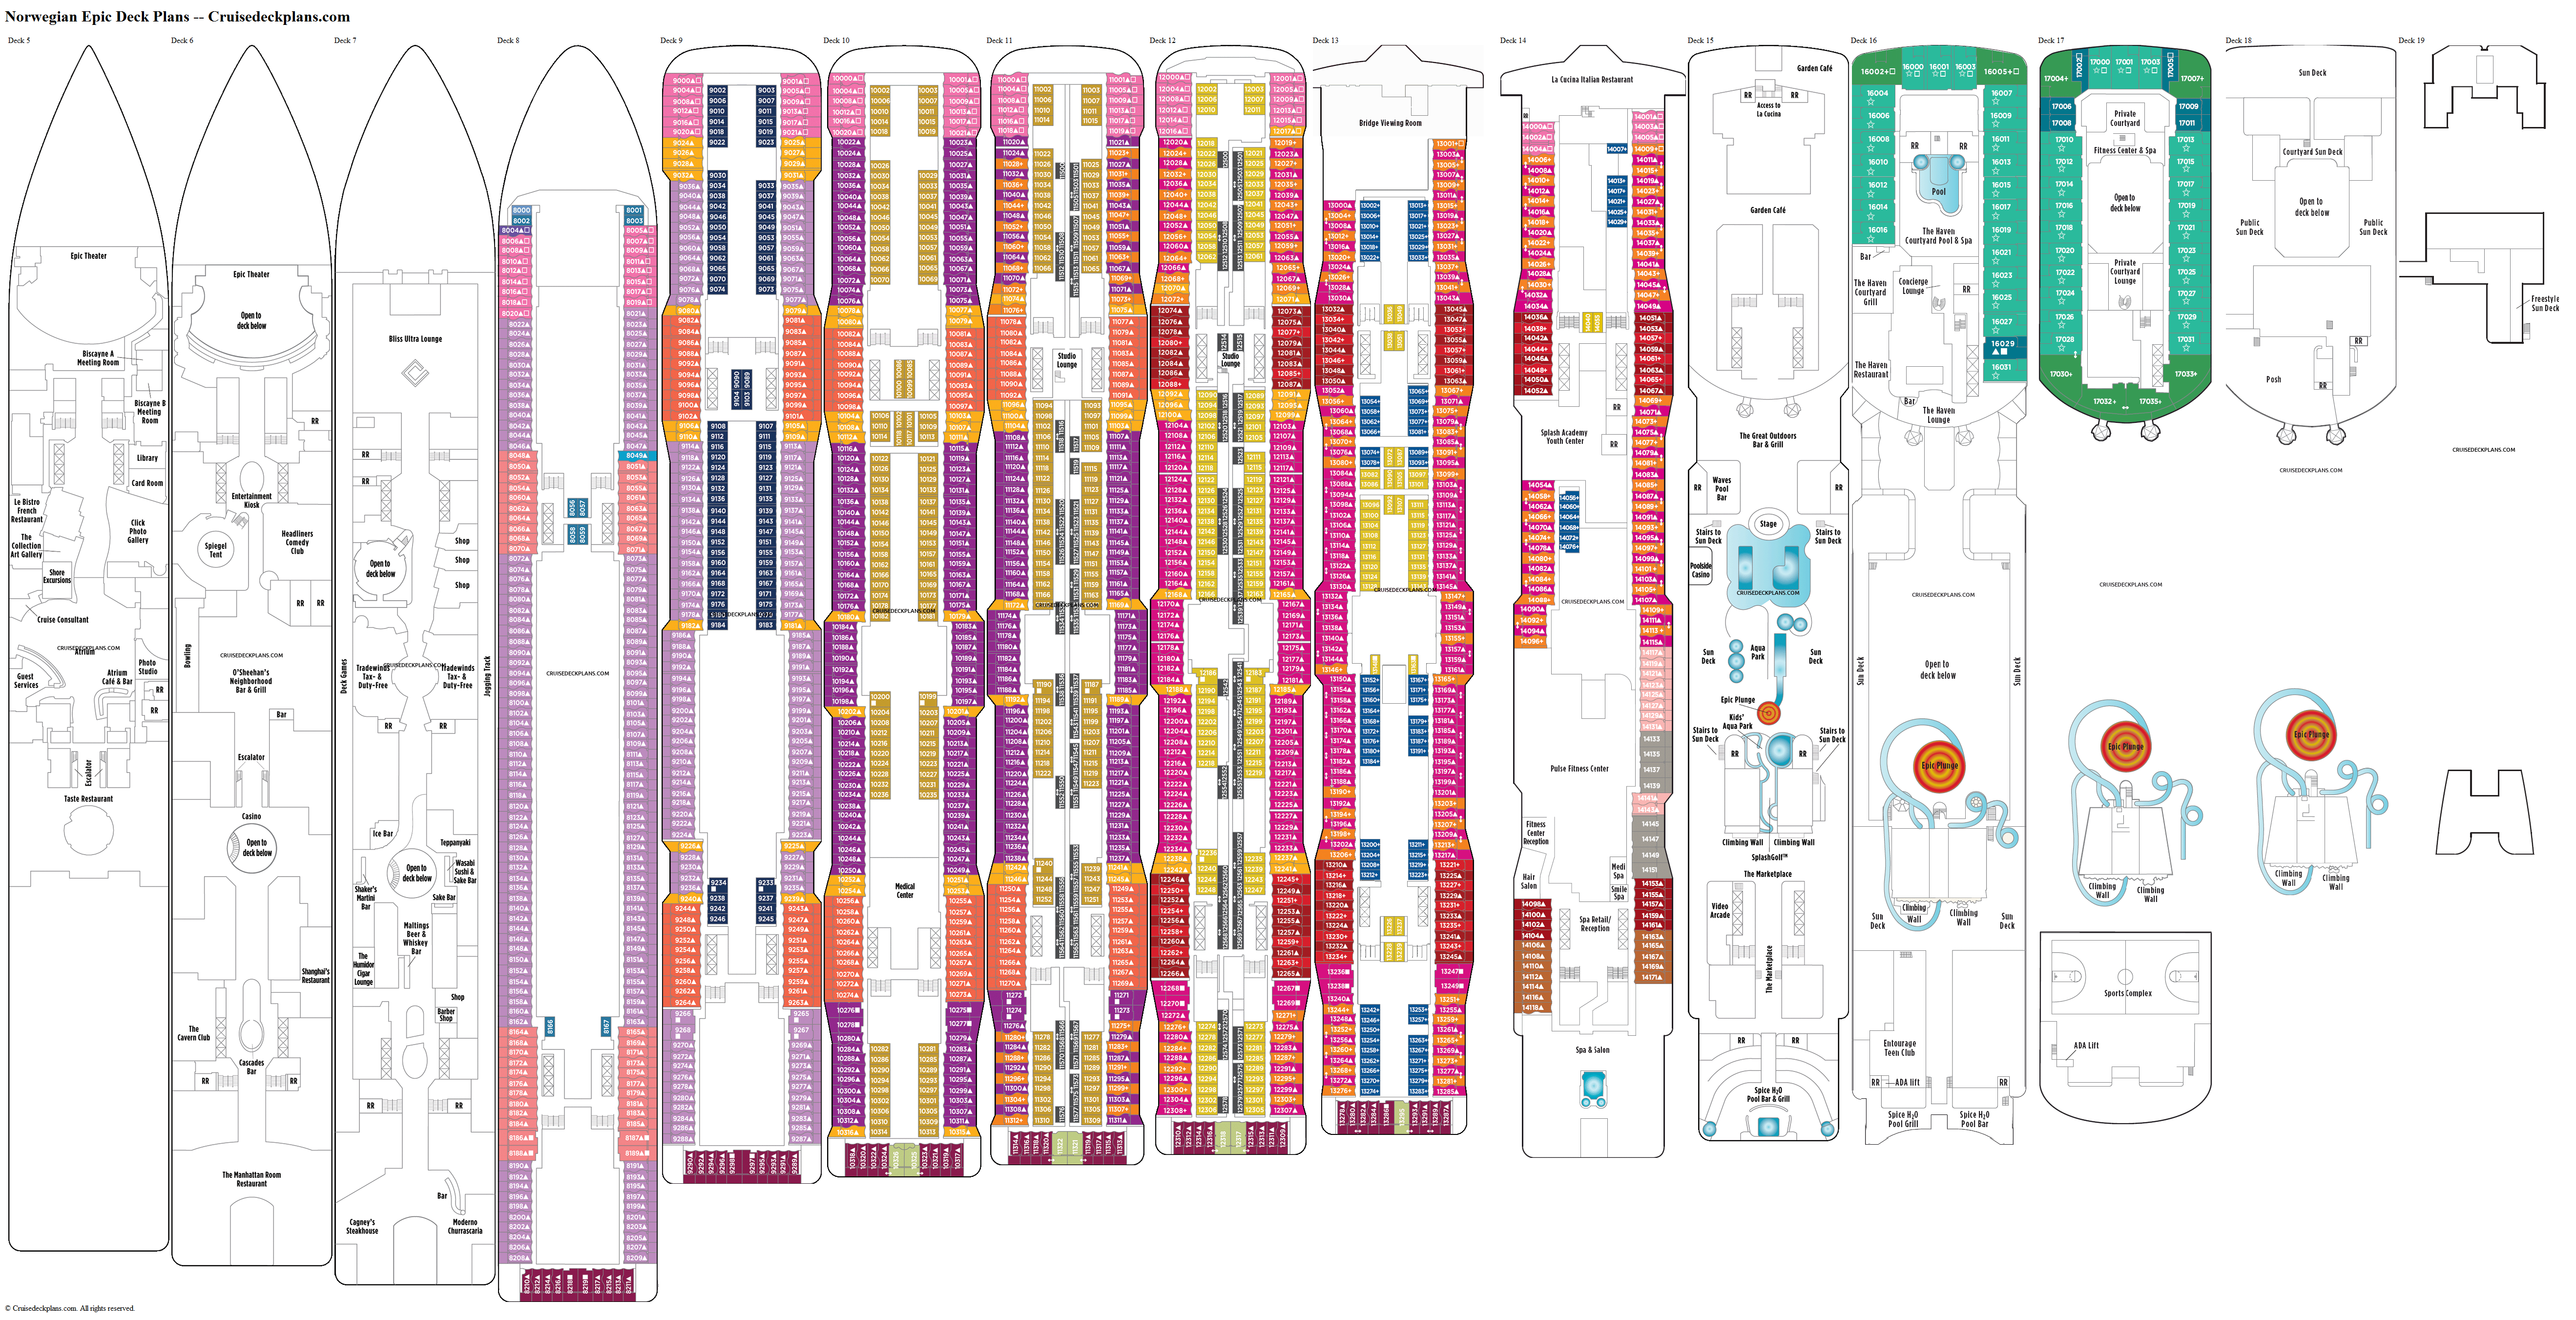 Norwegian Epic deck plans image